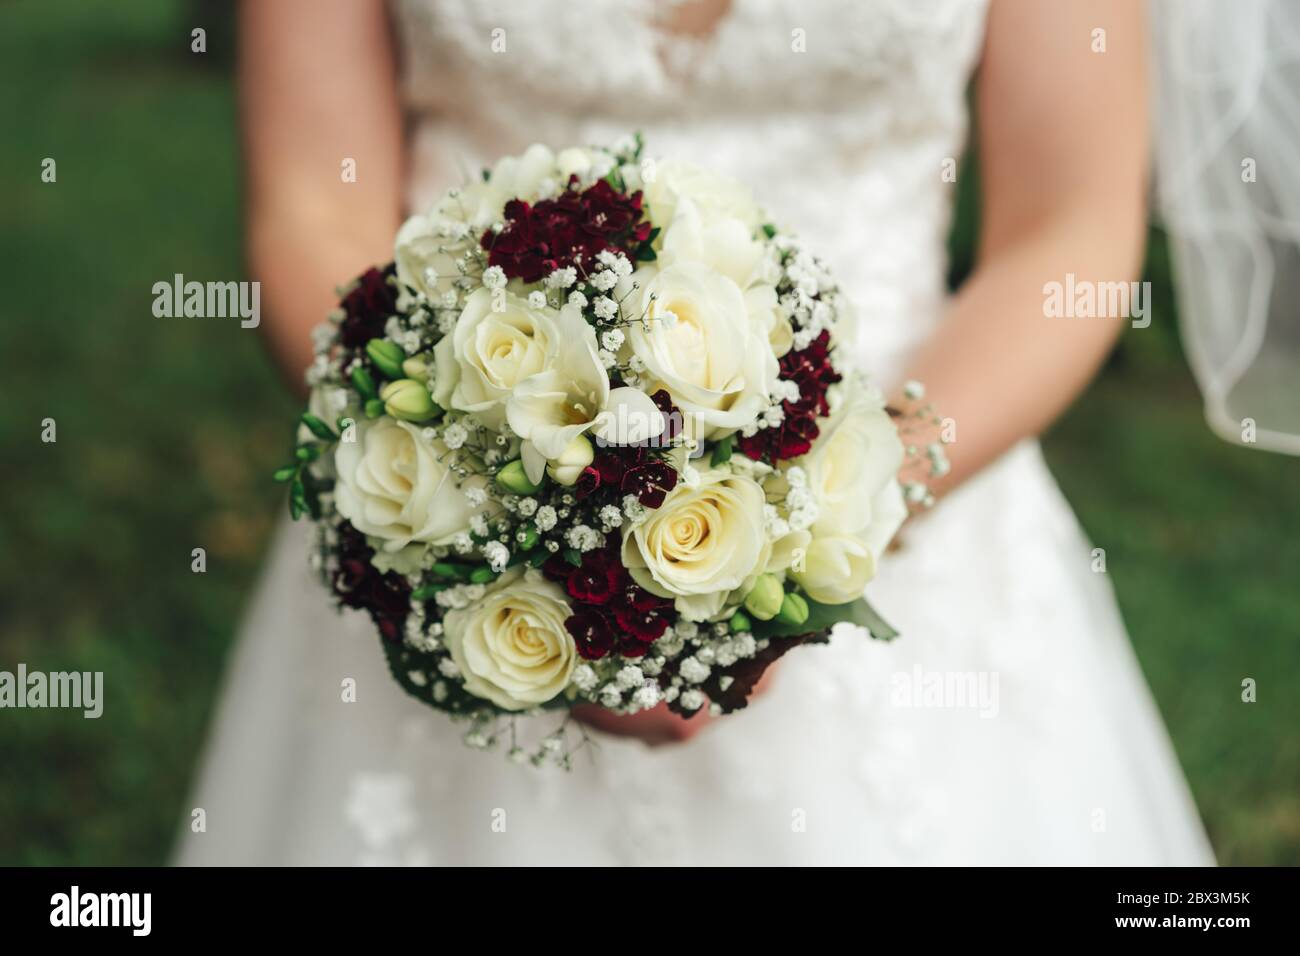 Close Up Wedding Bouquet White And Red Flowers Bride Holding Flowers In Her Hands Outdoor Background Wedding Day Concept Stock Photo Alamy